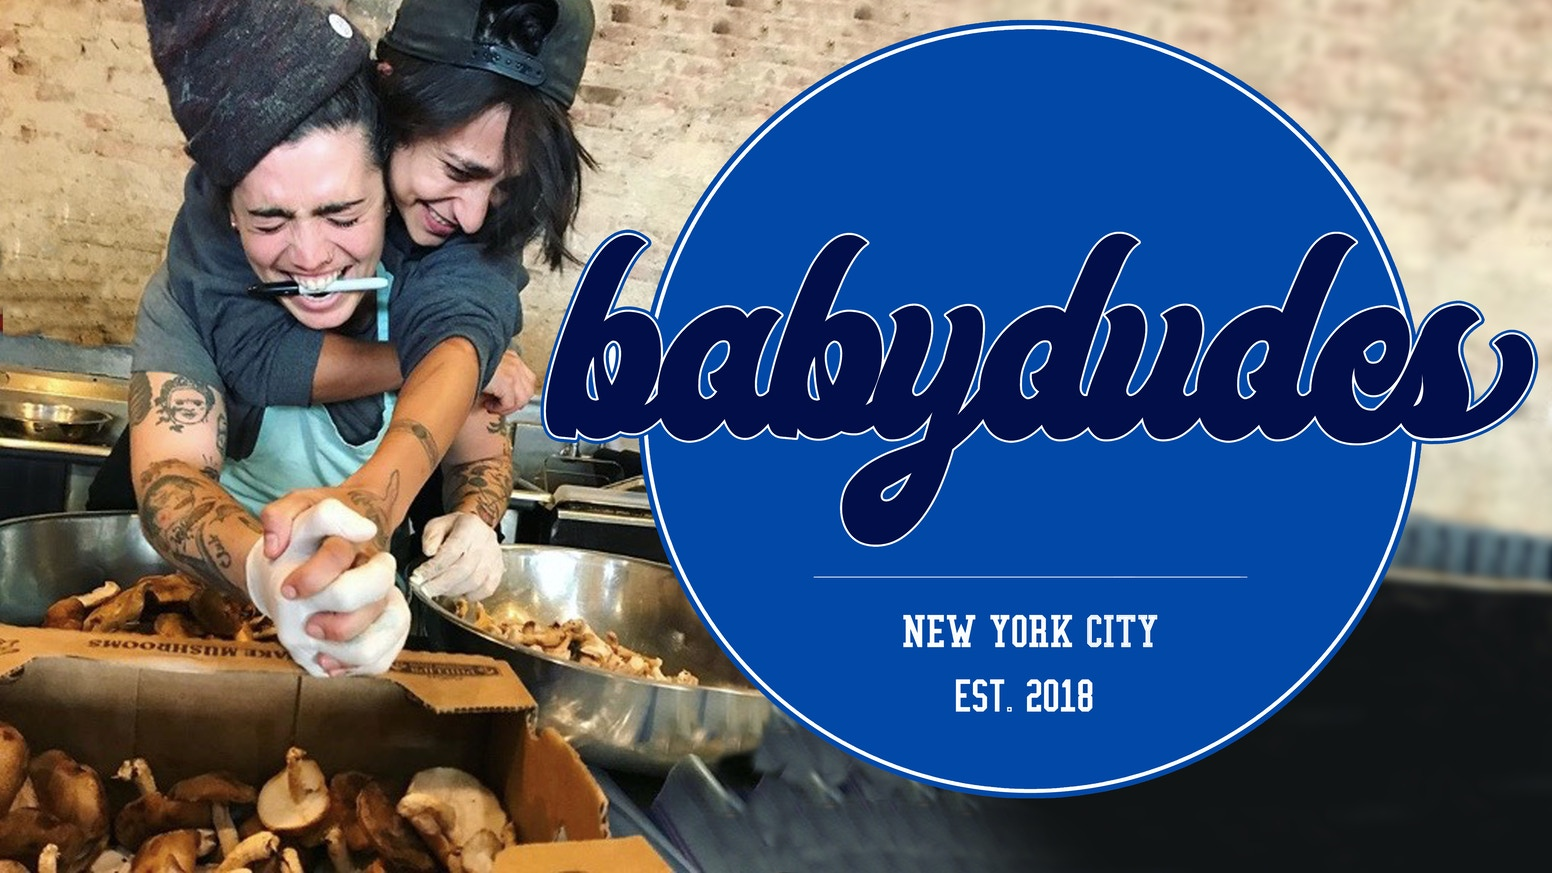 cd53c4a1598 Babydudes Cafe: coffee, food- a place to bring your babydude by Tali ...